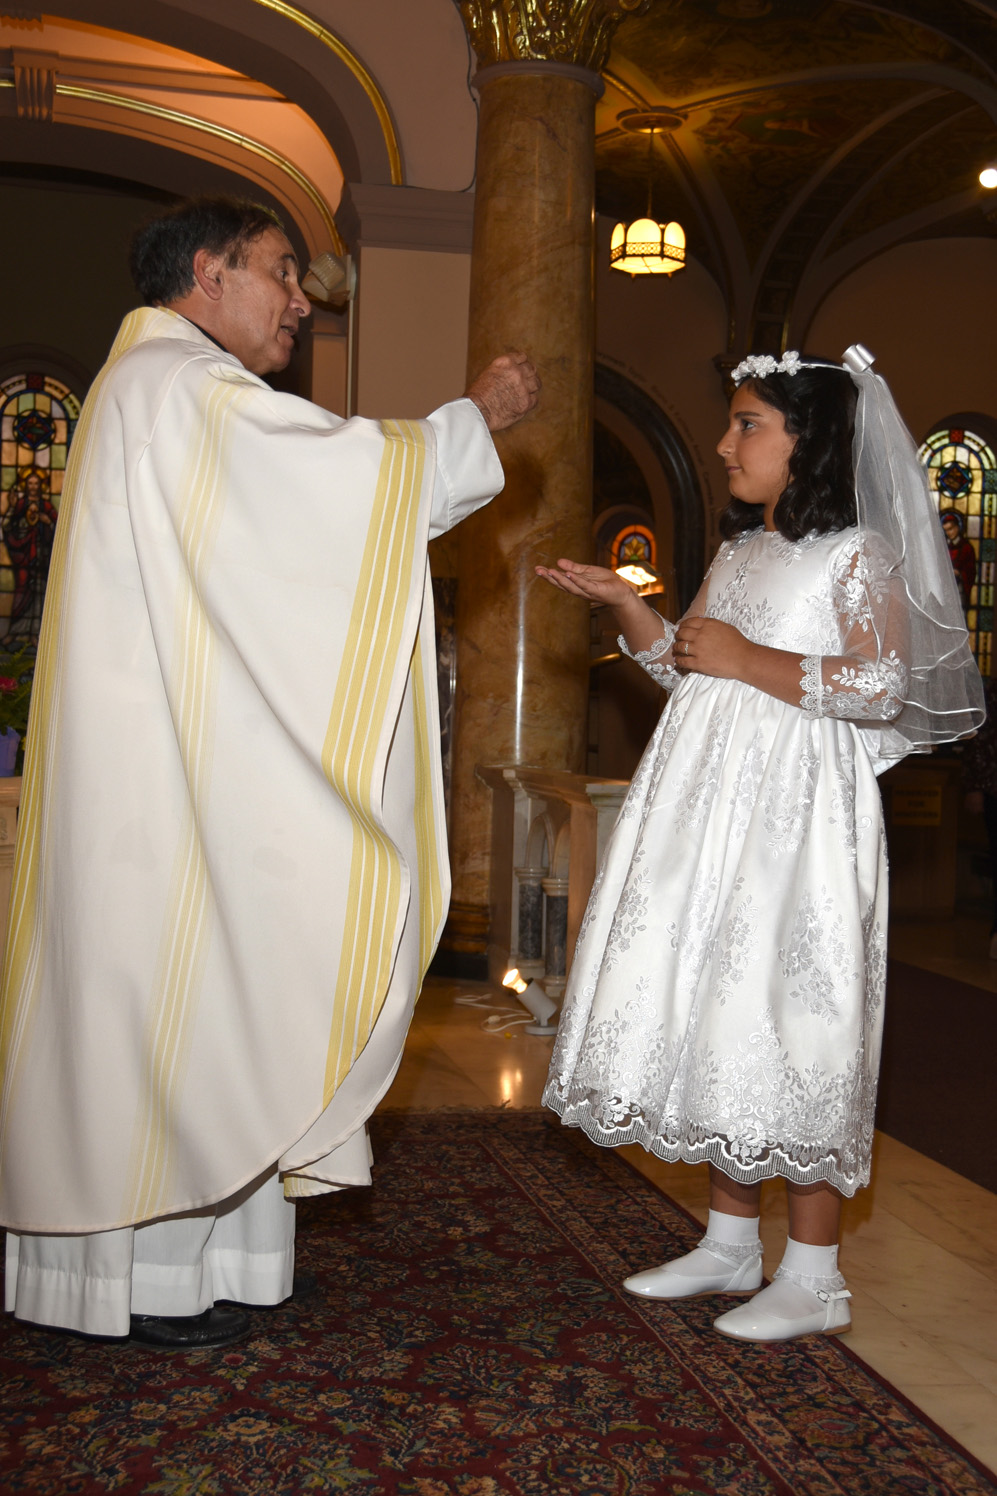 FIRST-COMMUNION-MAY-2-2021-1001001263